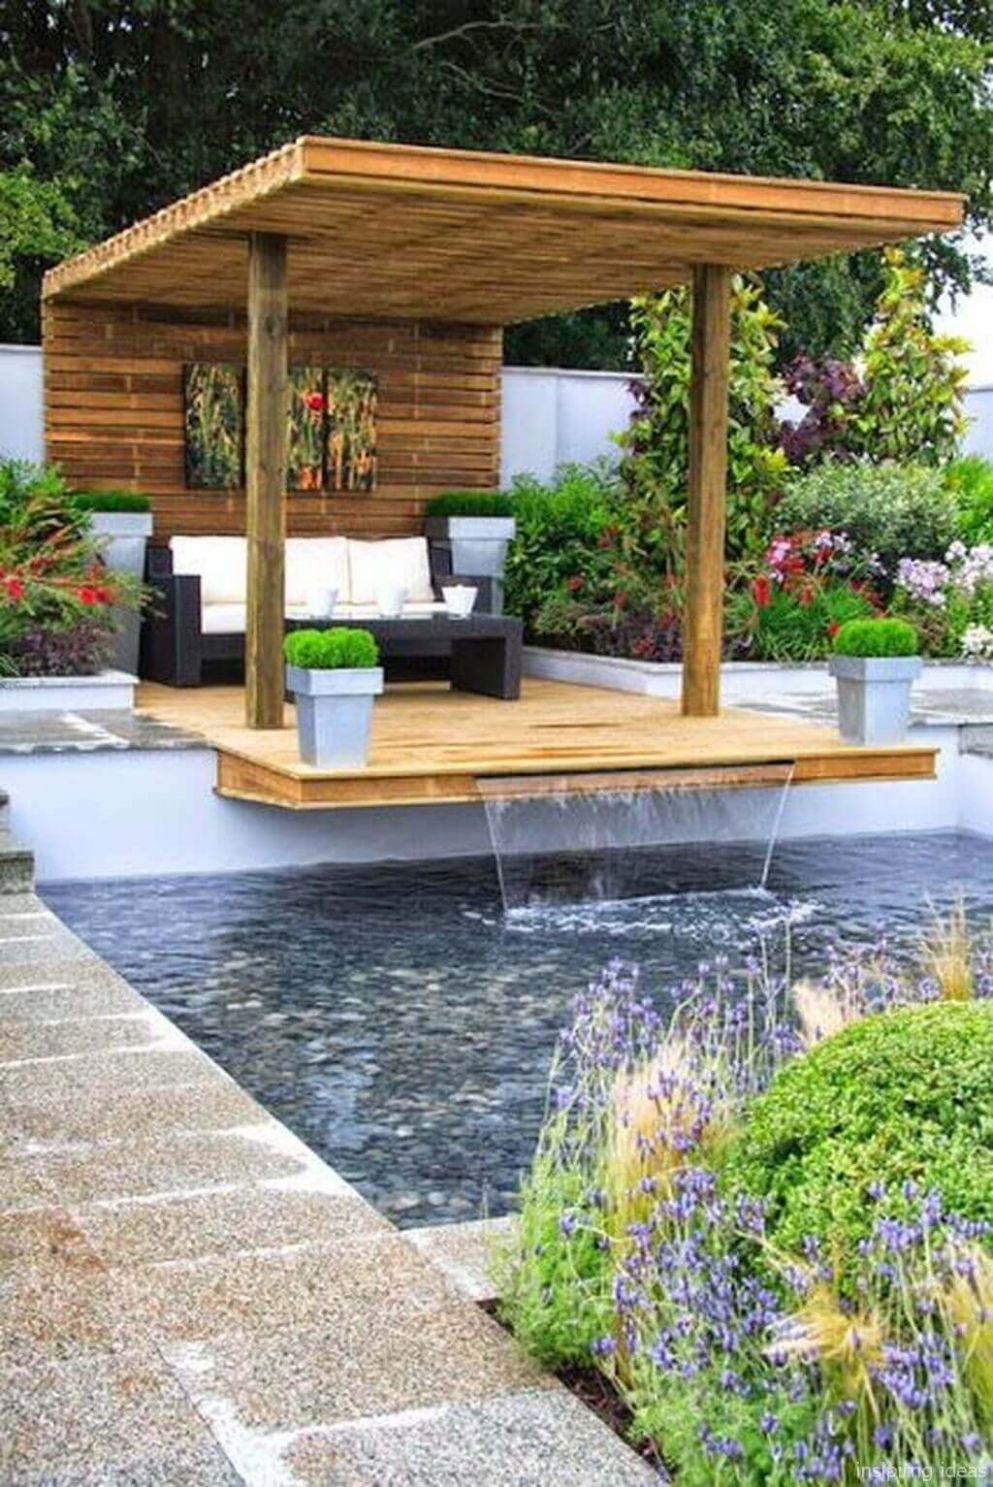 11 Outstanding Pool and Pergola Designs - pool enhancement ideas